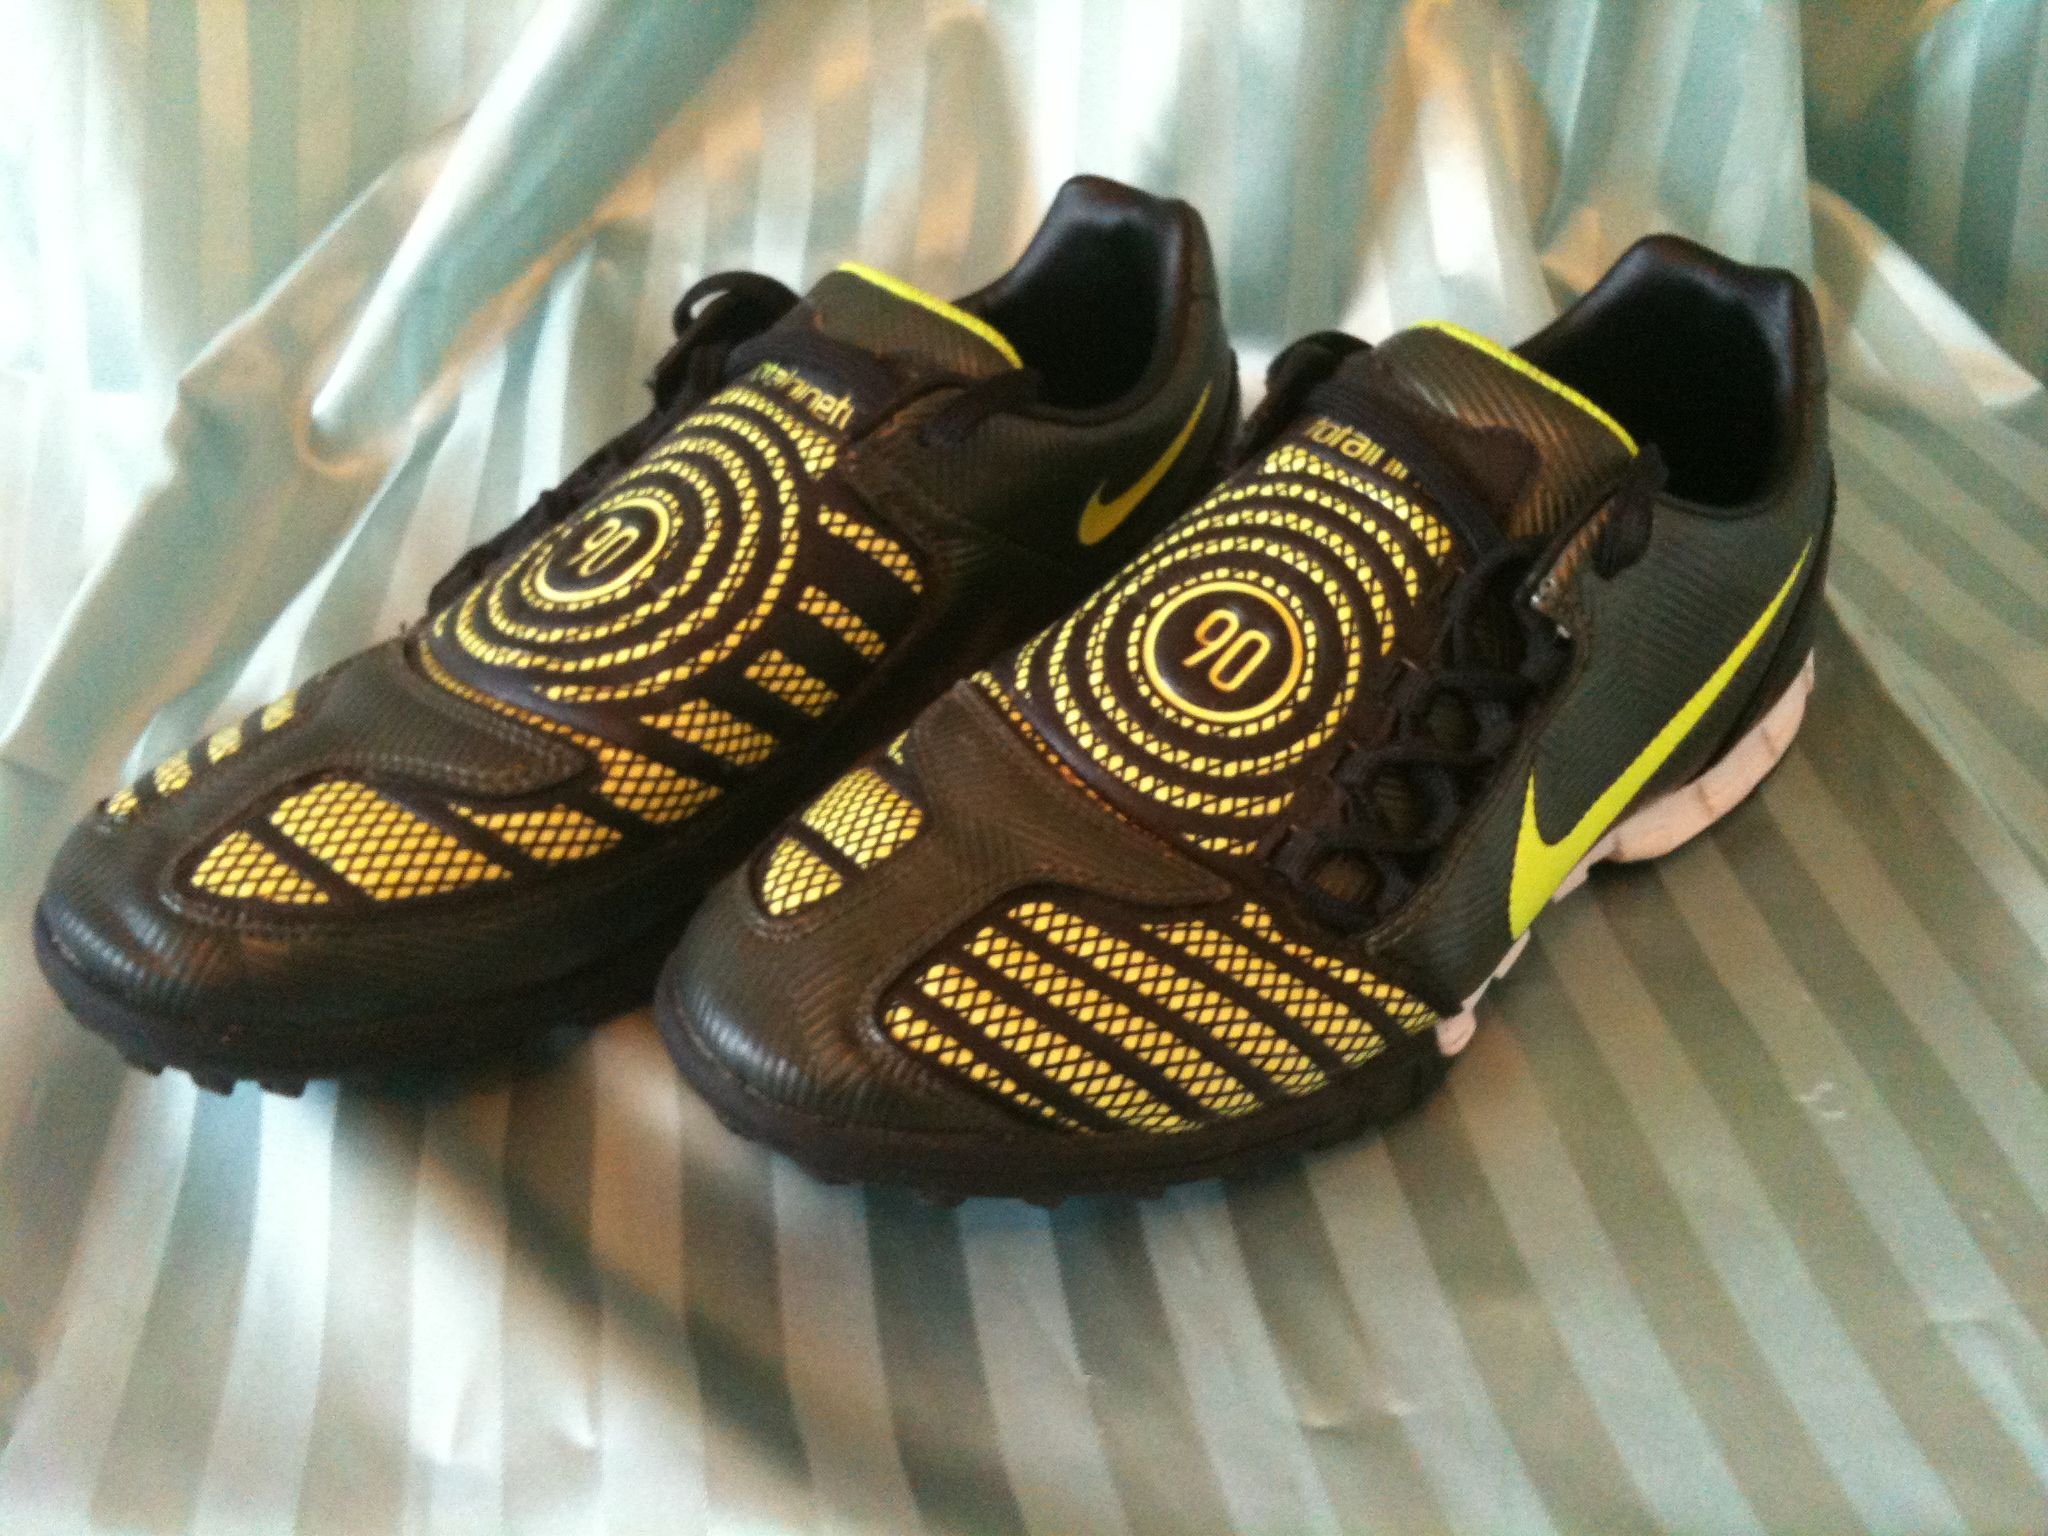 official photos cafa4 1eb5b NIKE TOTAL 90 NINETY Black Yellow Football Boots Astro Turf Trainers Size  7.5 42 22.00